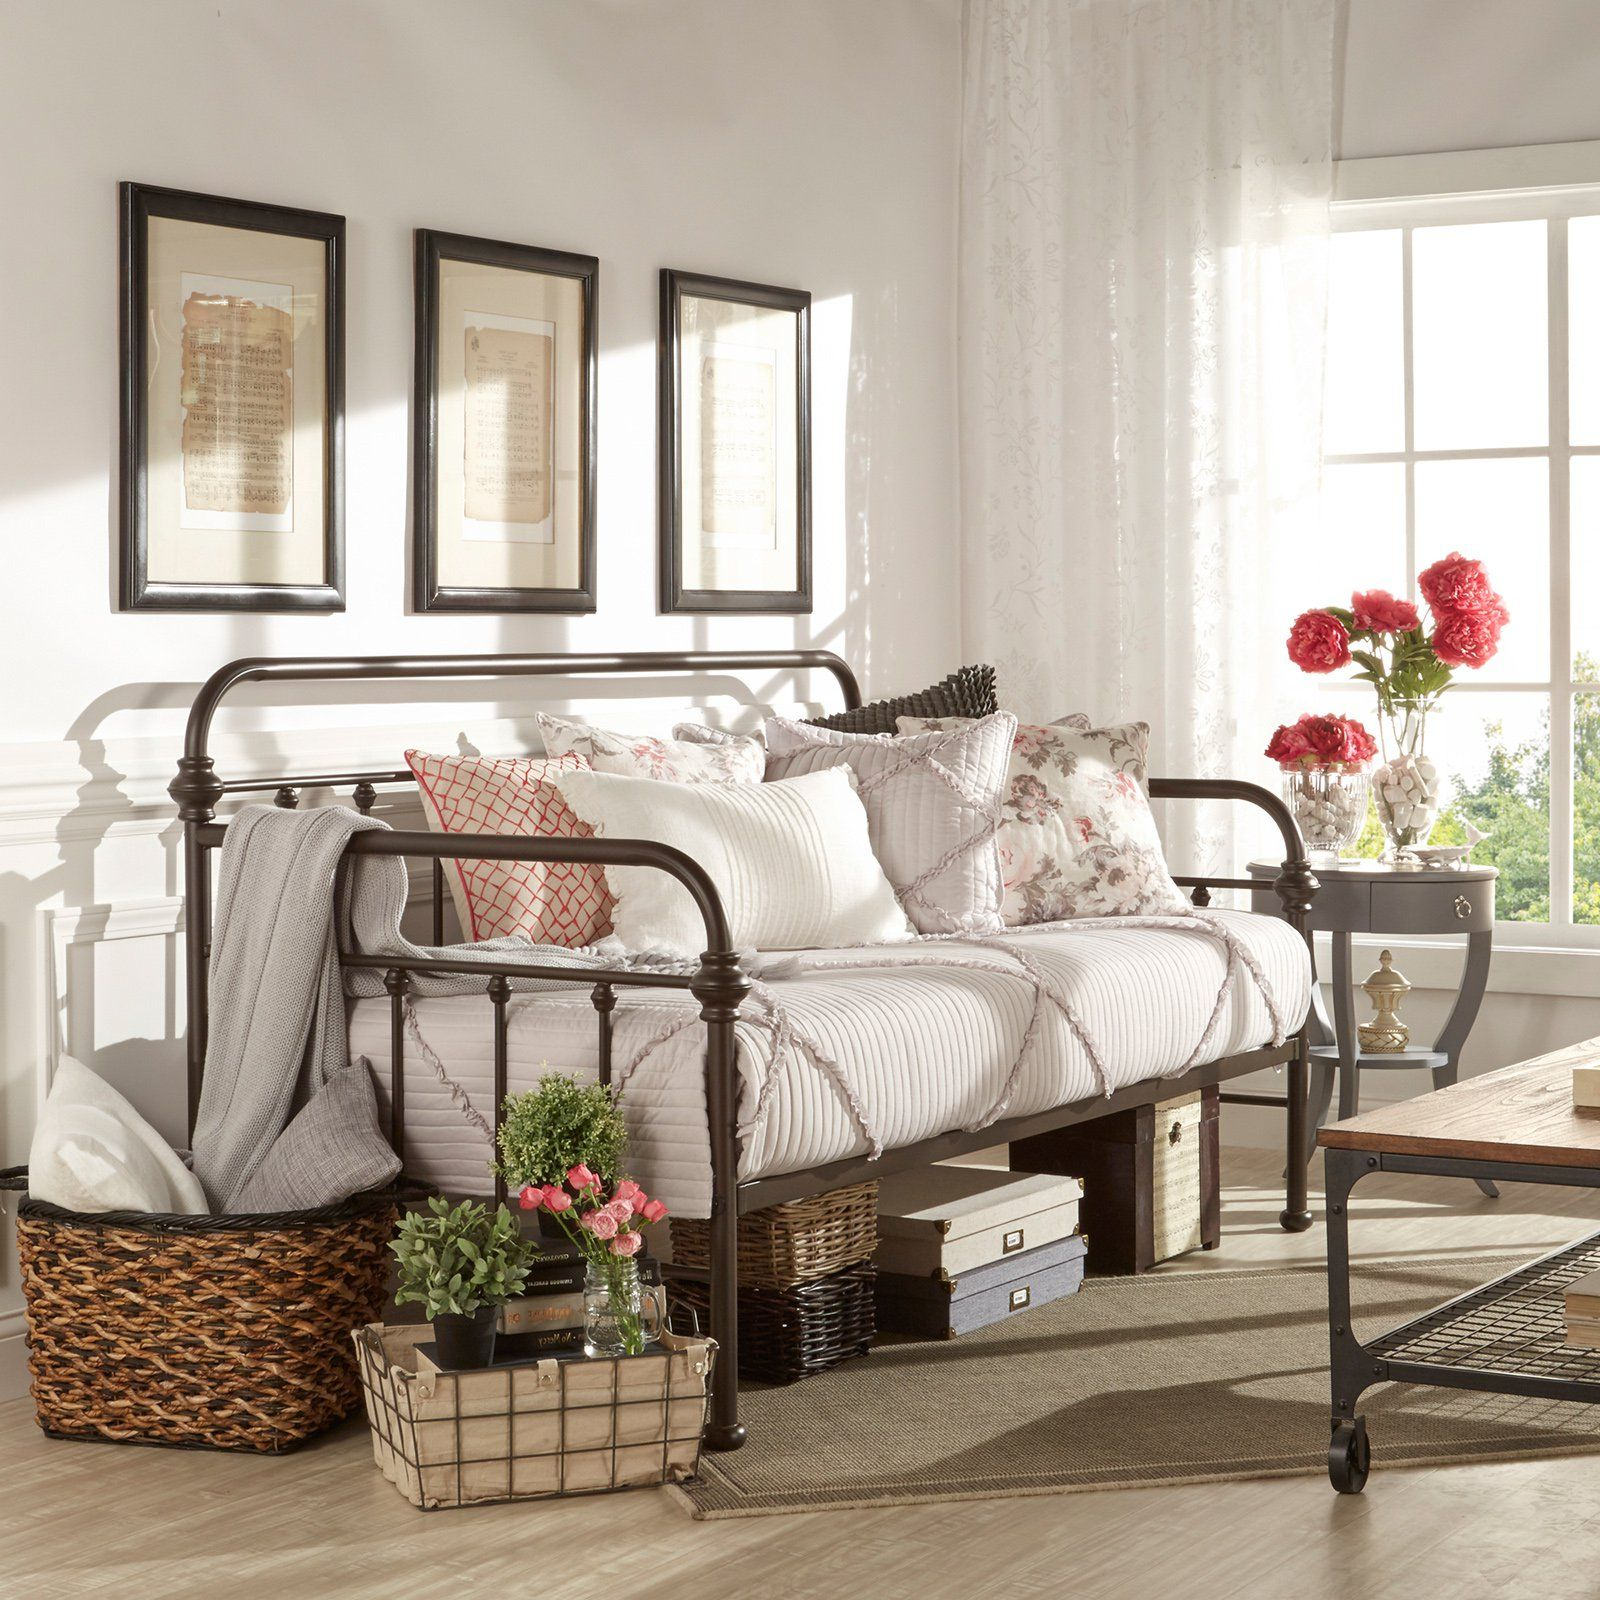 Homelegance tadley metal daybed from hayneedle inspirational